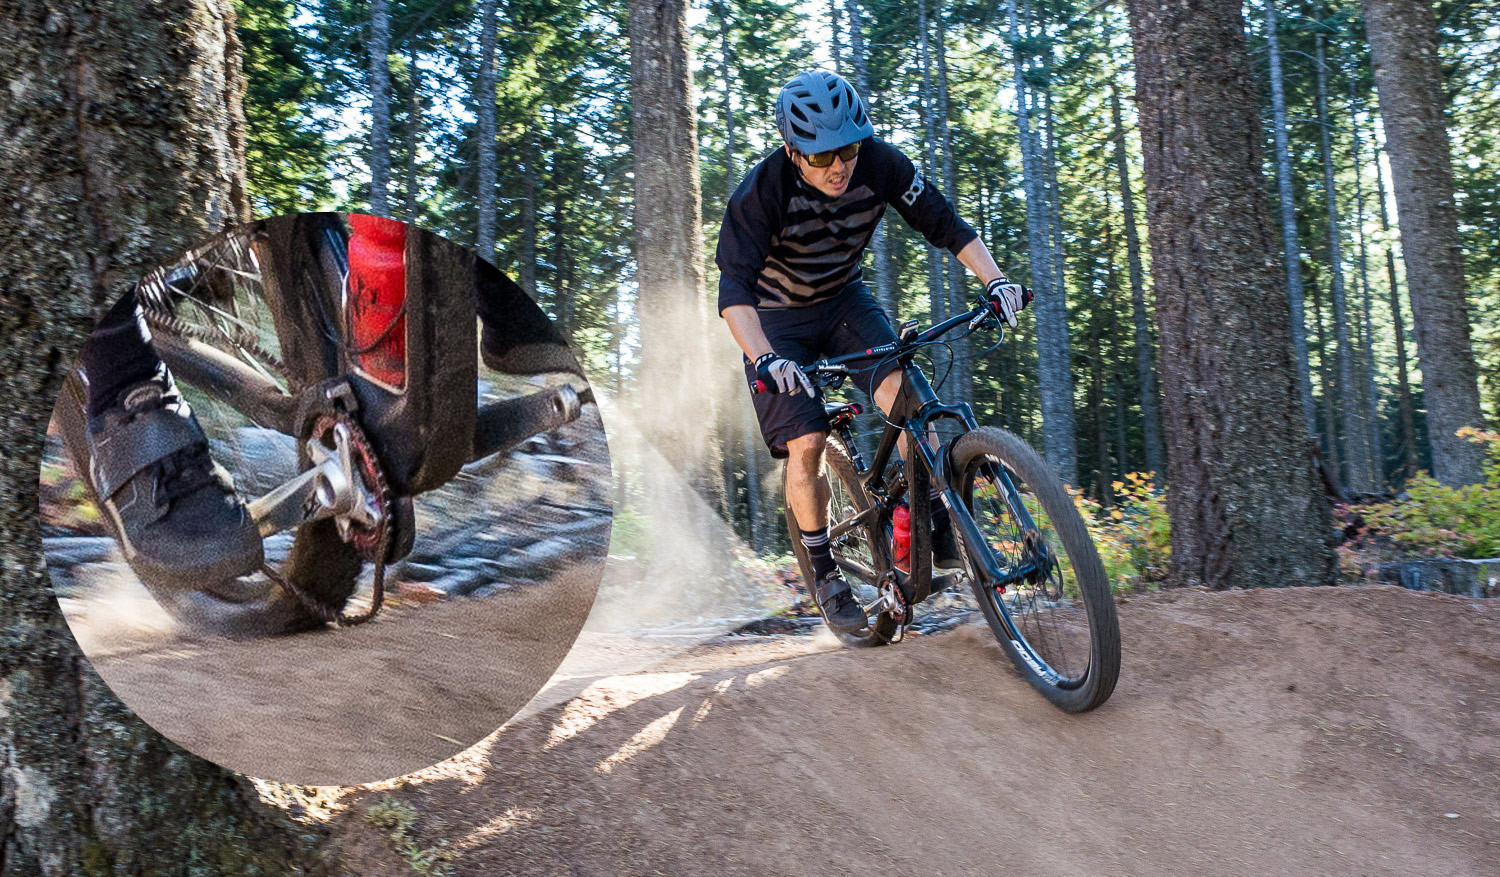 When the rear suspension is fully loaded, even with a clutch derailleur things can happen.